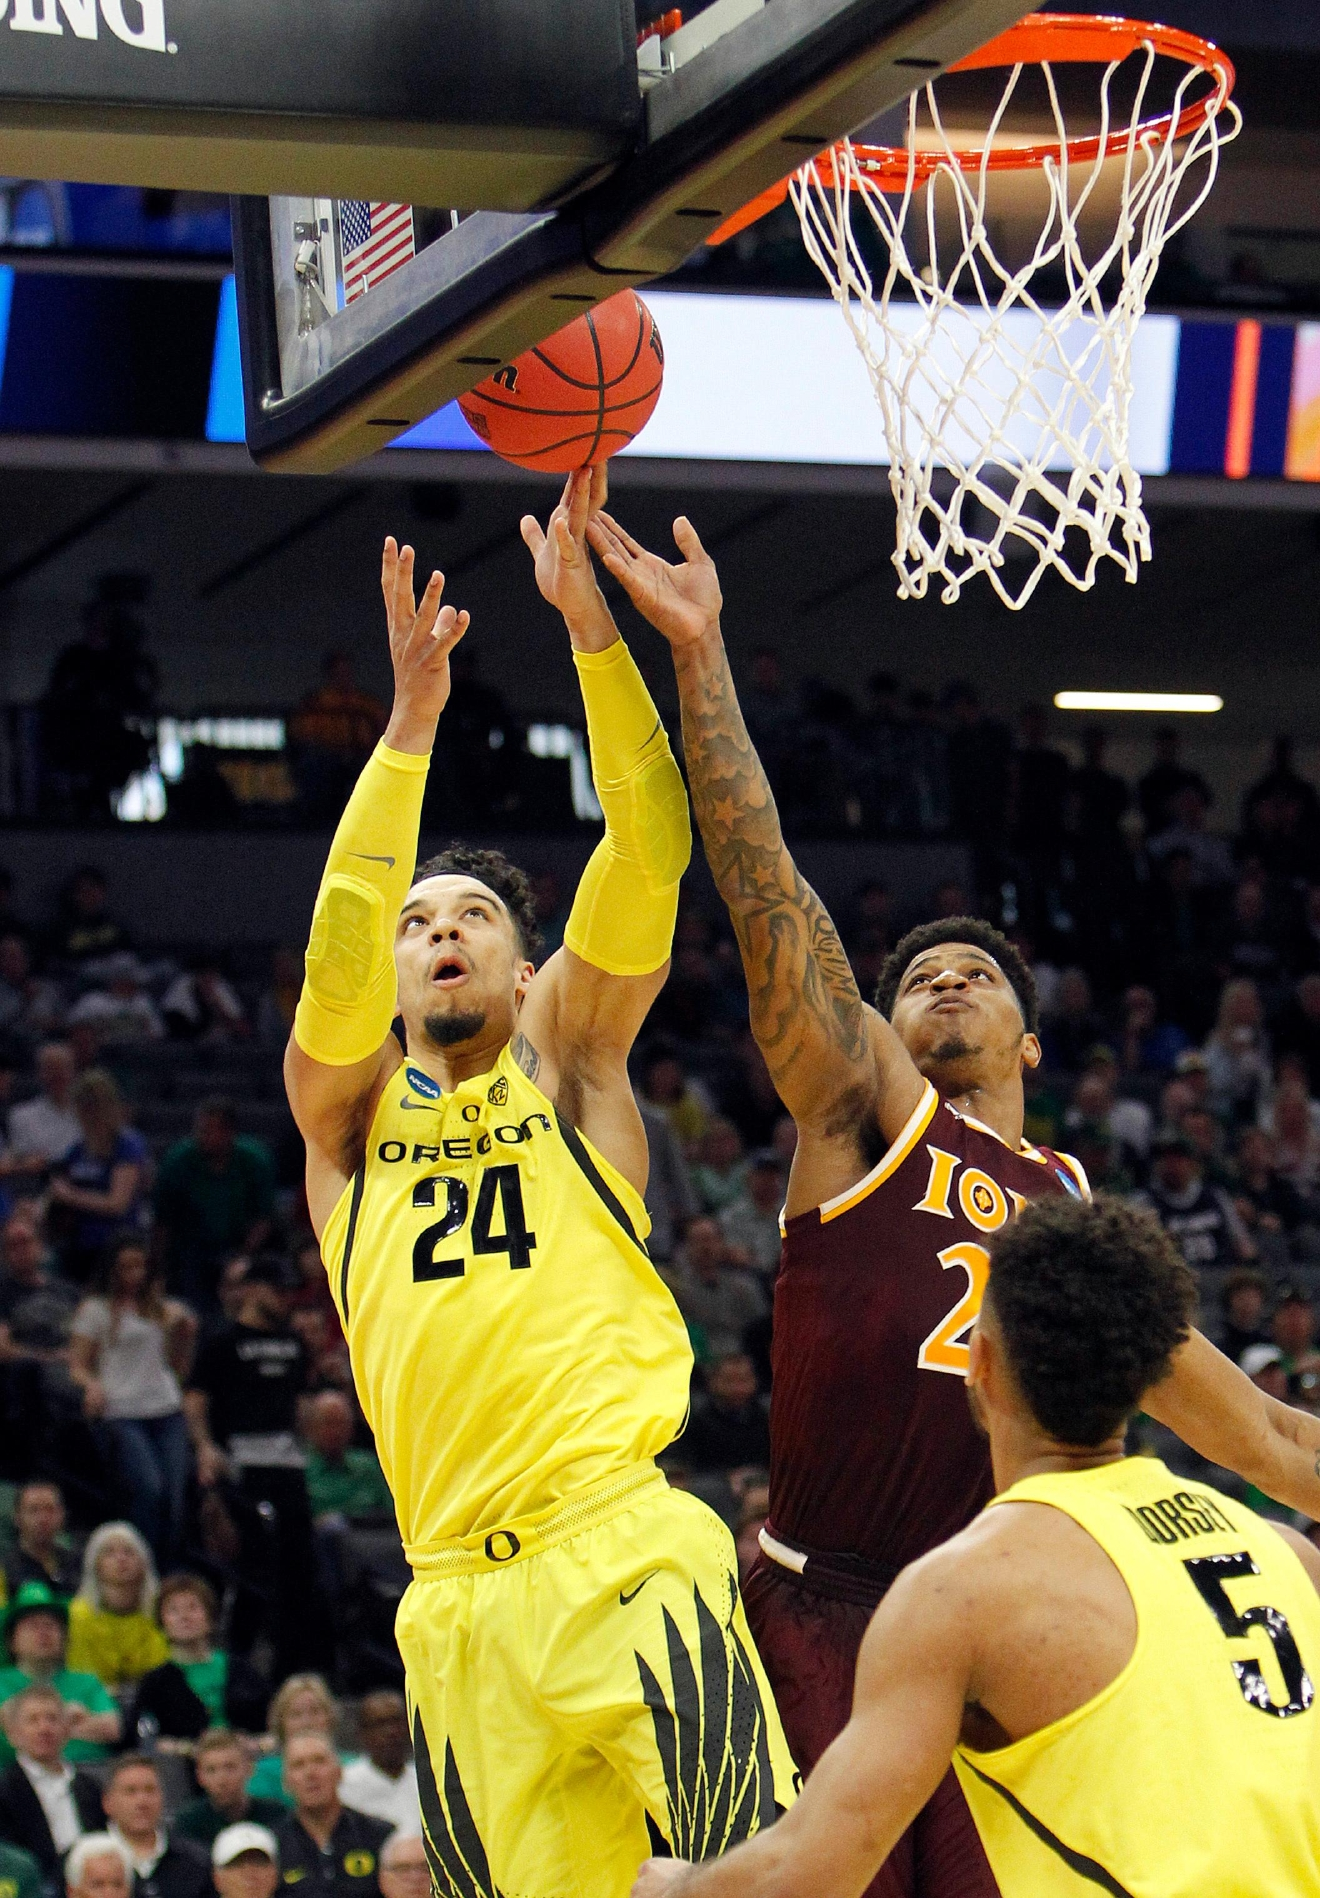 Oregon forward Dillon Brooks, left, and Iona forward Jordan Washington, right, battle for a rebound during the first half of a first-round game in the men's NCAA college basketball tournament in Sacramento, Calif., Friday, March 17, 2017. (AP Photo/Steve Yeater)